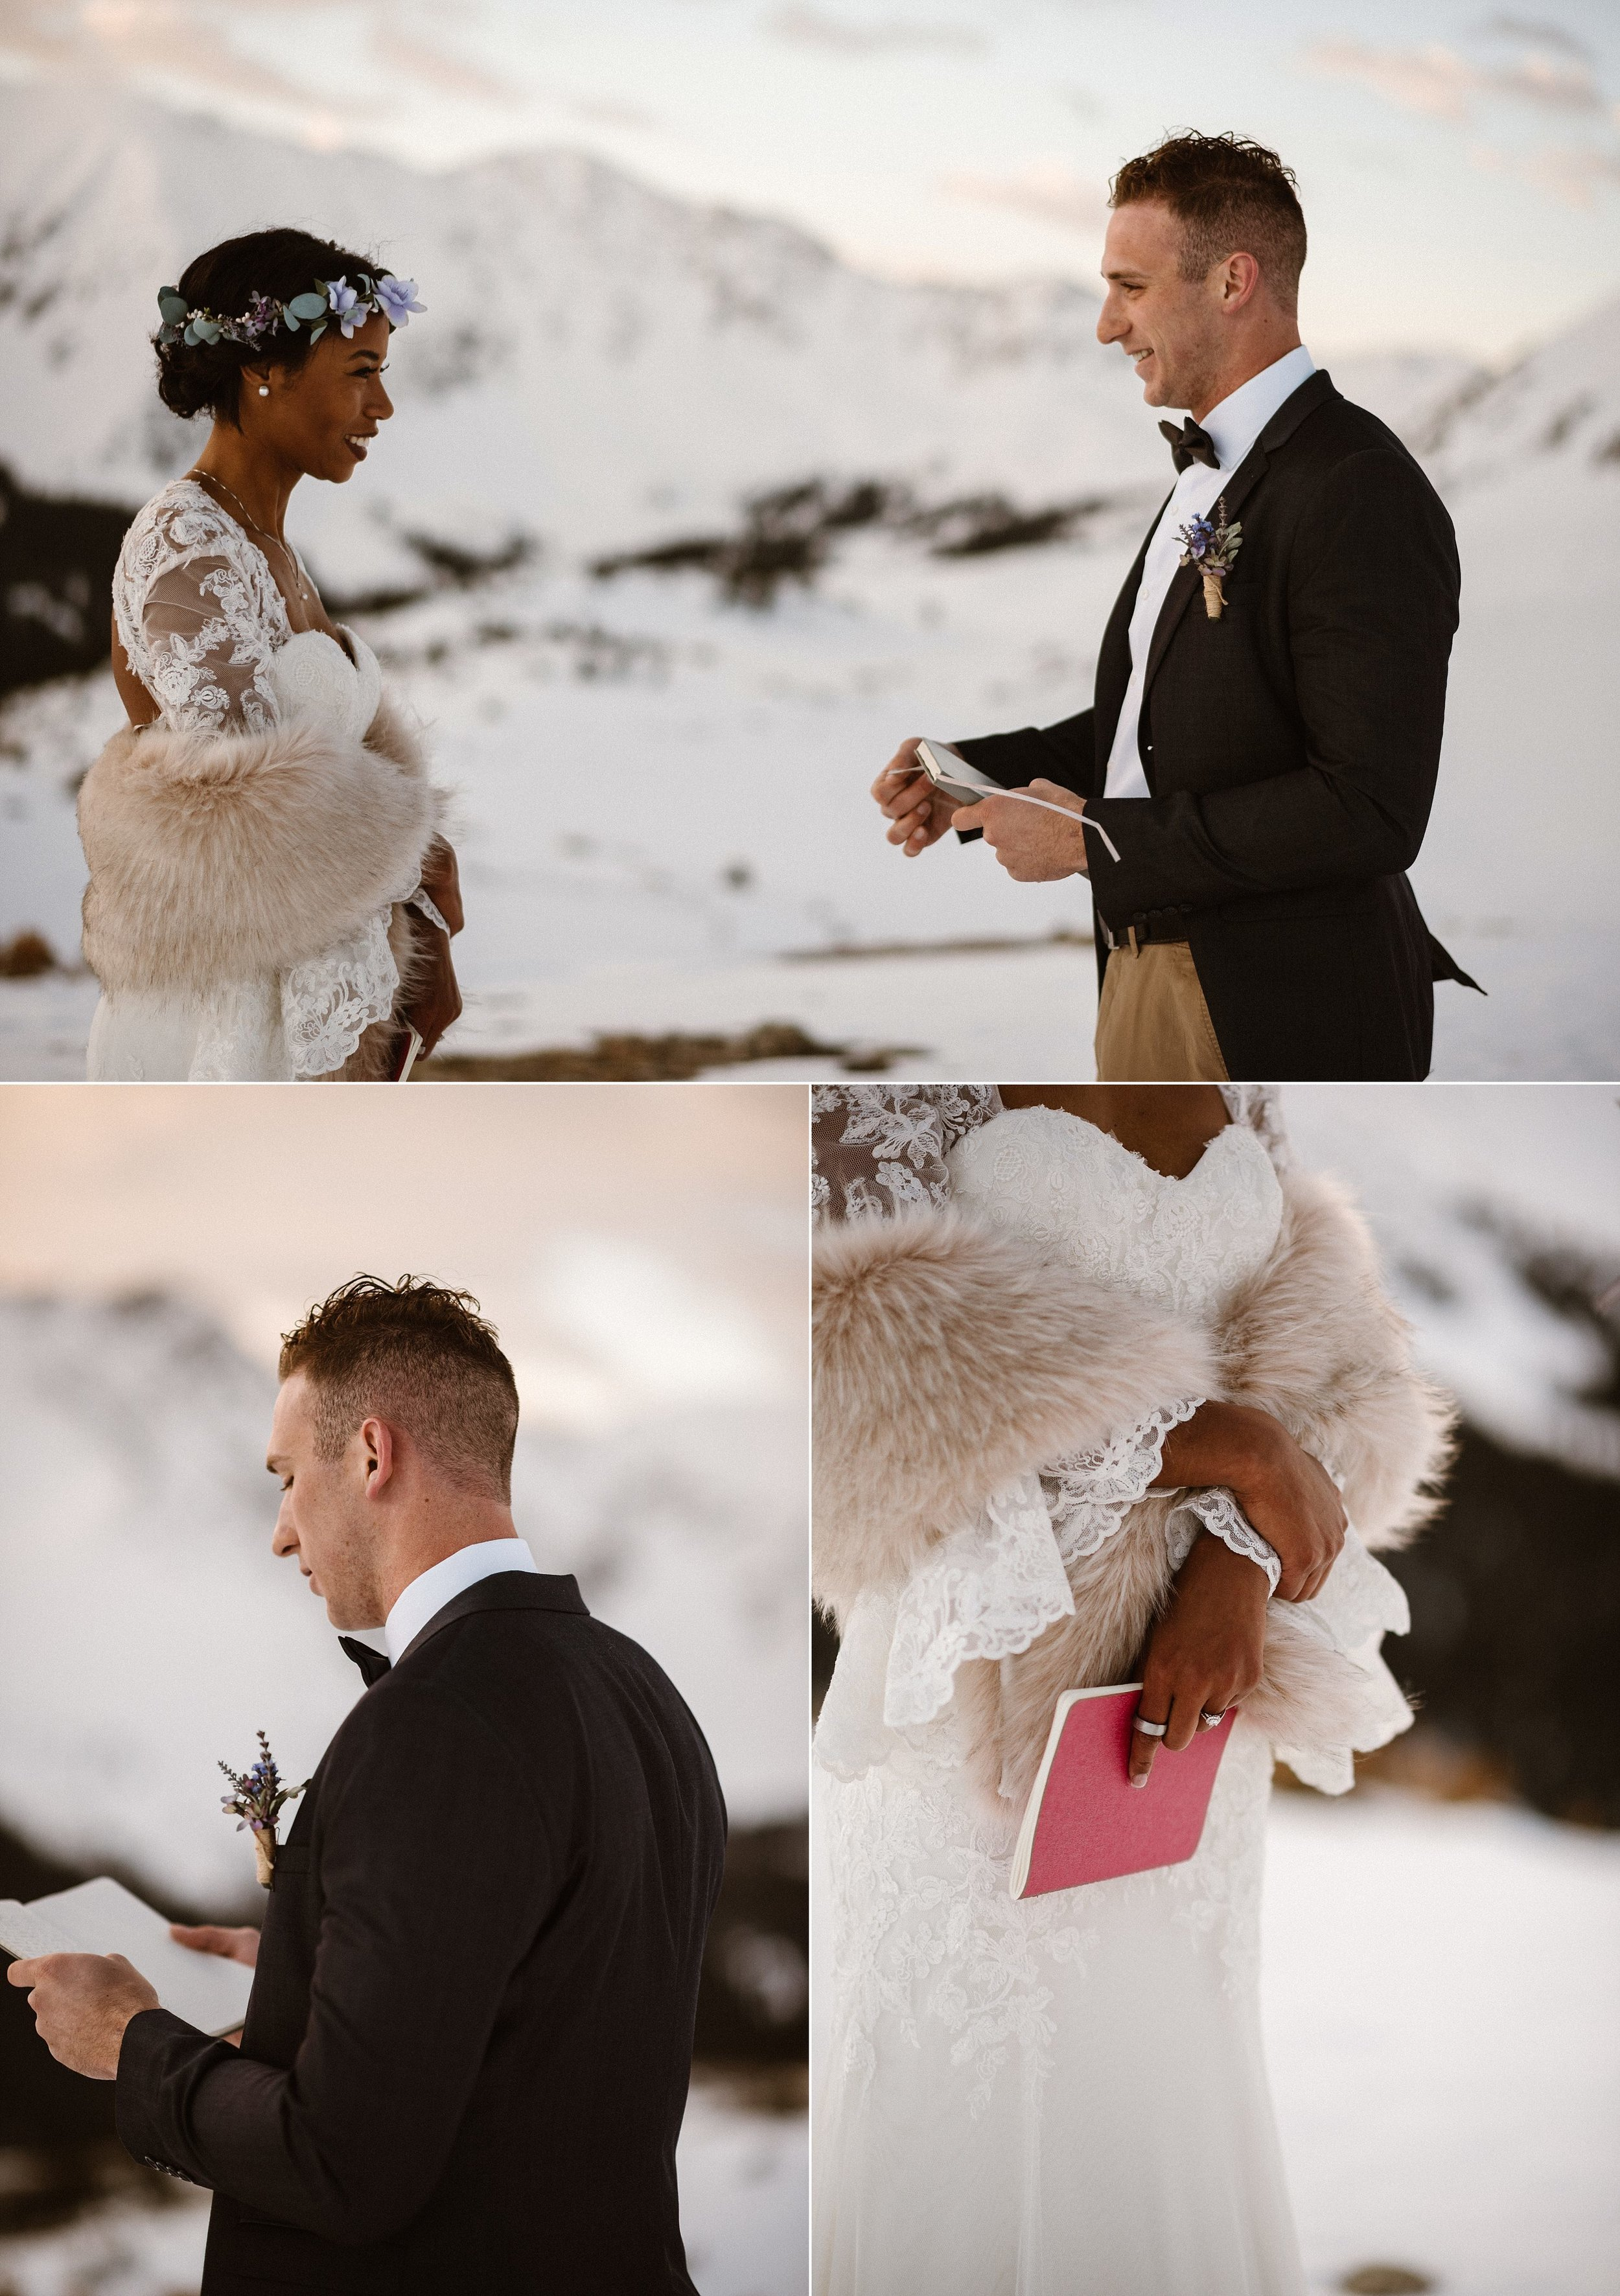 Jared looked fondly at his bride as she finished her intimate vows. With the alpine glow lighting Mikayla, Jared began his vows. With the self solemnization laws of Colorado, the only witness to their marriage was their intimate wedding photographer Maddie Mae.